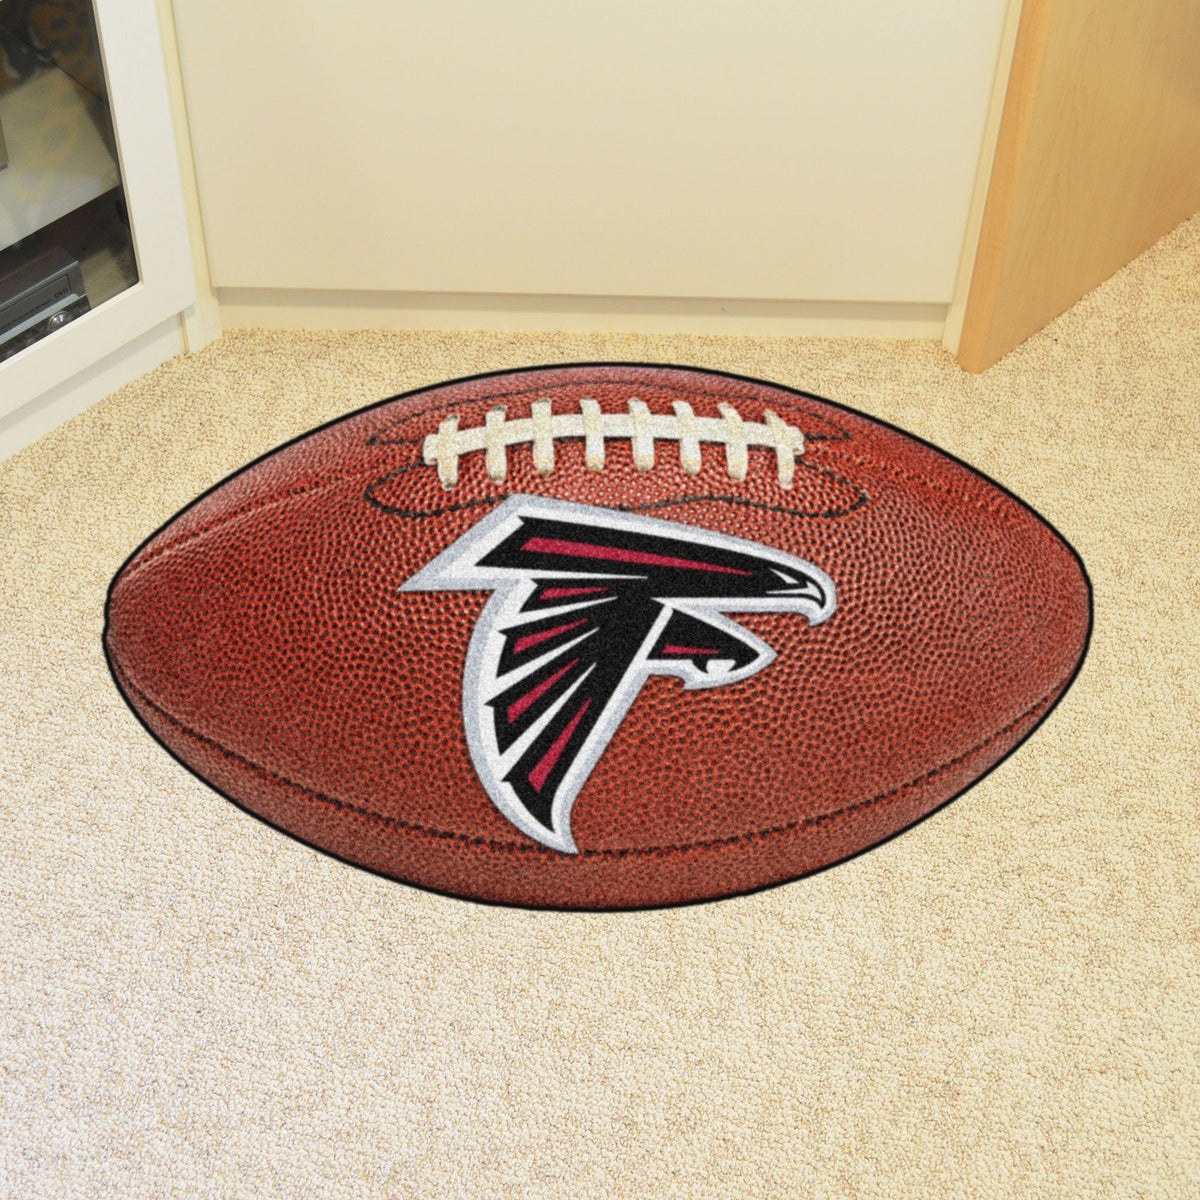 NFL - Football Mat NFL Mats, Custom Shape Rugs, Football Mat, NFL, Home Fan Mats Atlanta Falcons